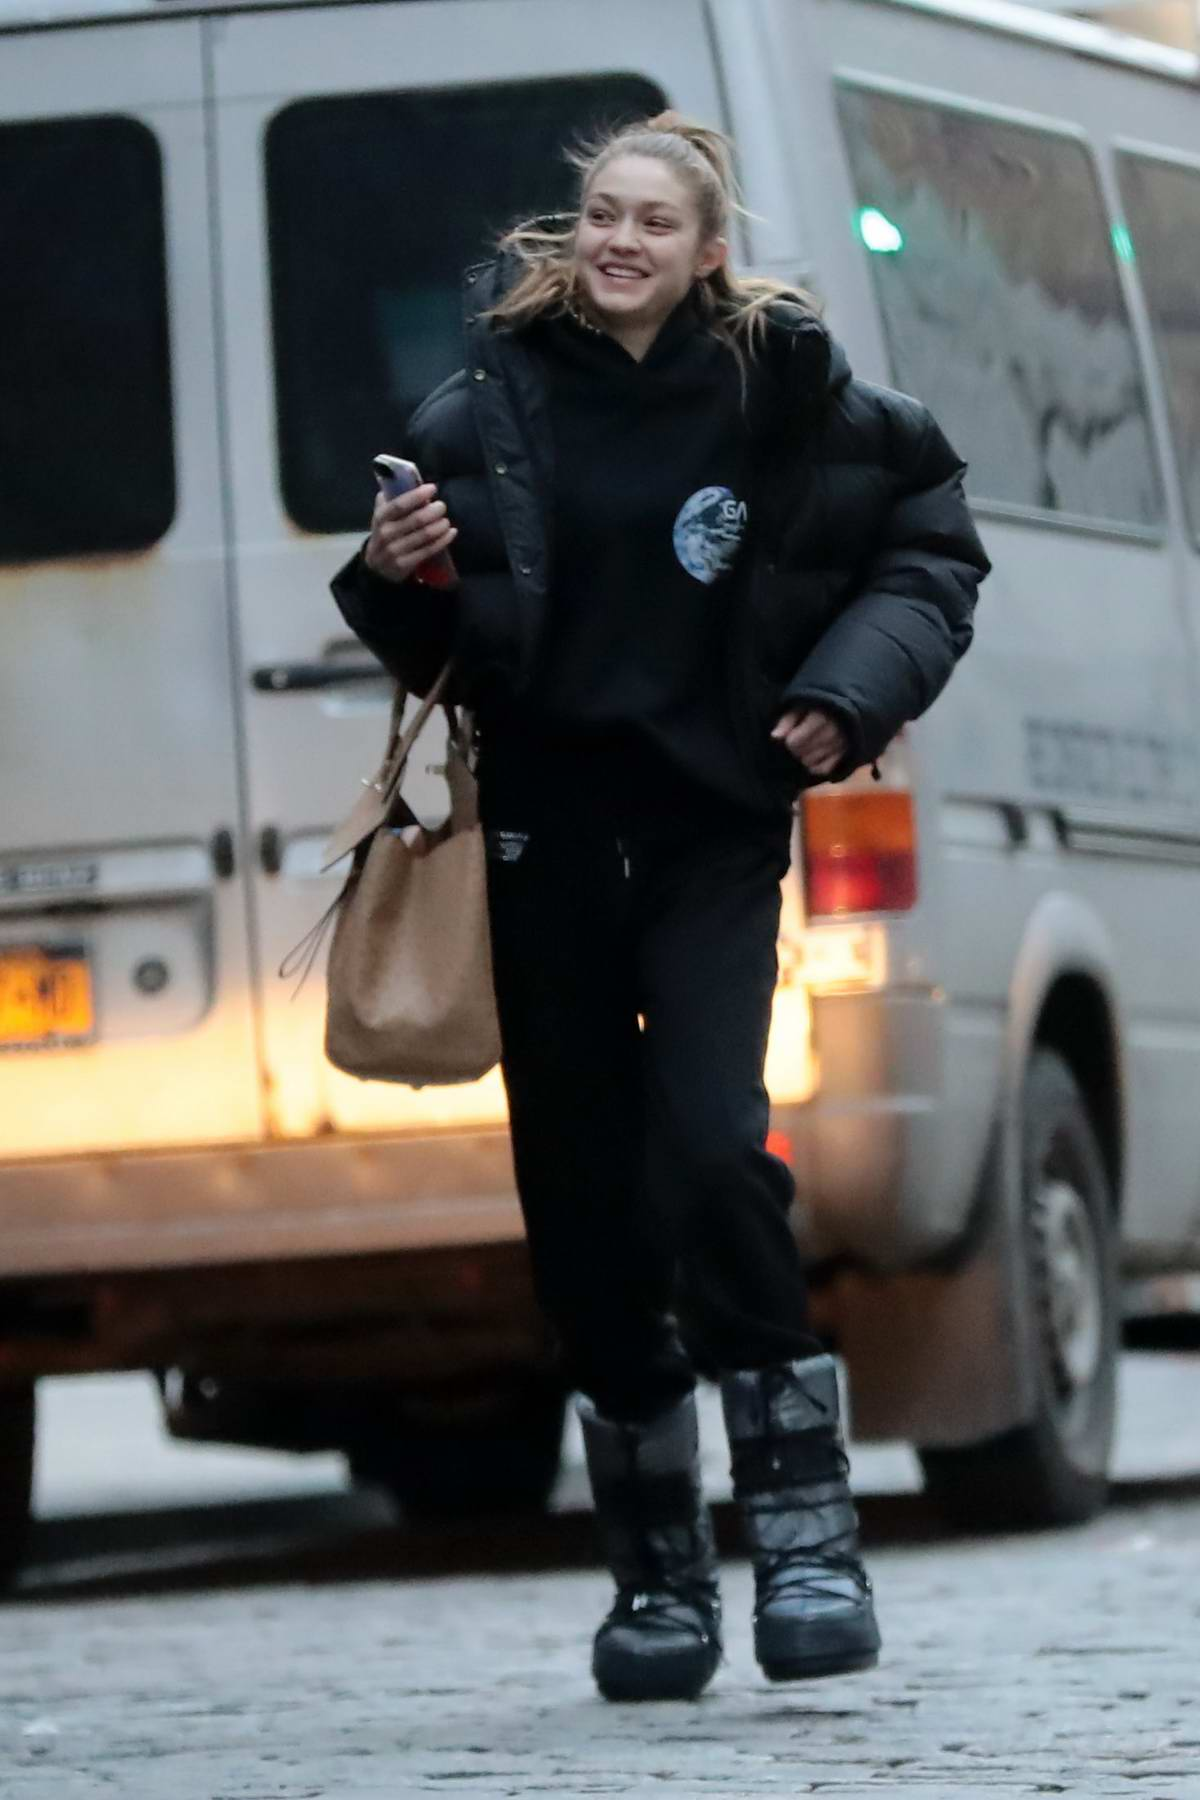 Gigi Hadid is all smiles as she leaves a photoshoot in New York City